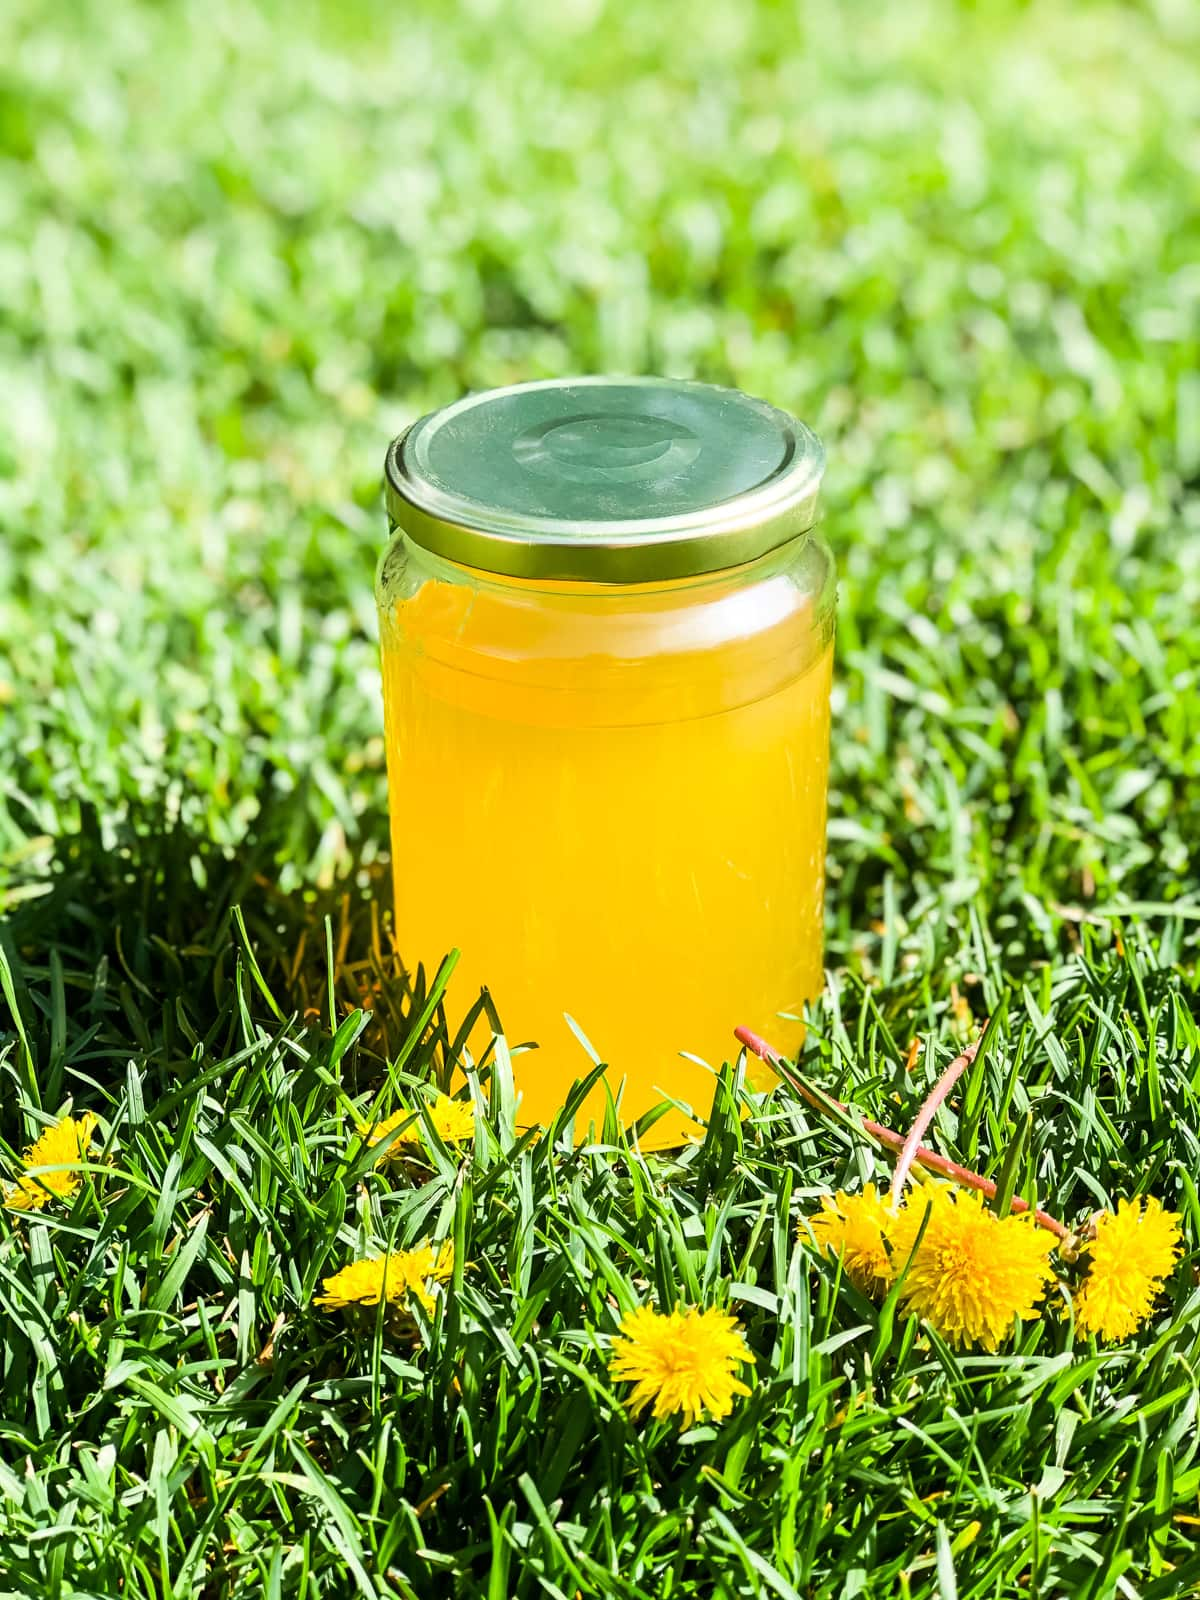 a jar of Dandelion Jelly sitting in green grass. in the foreground are dandelions